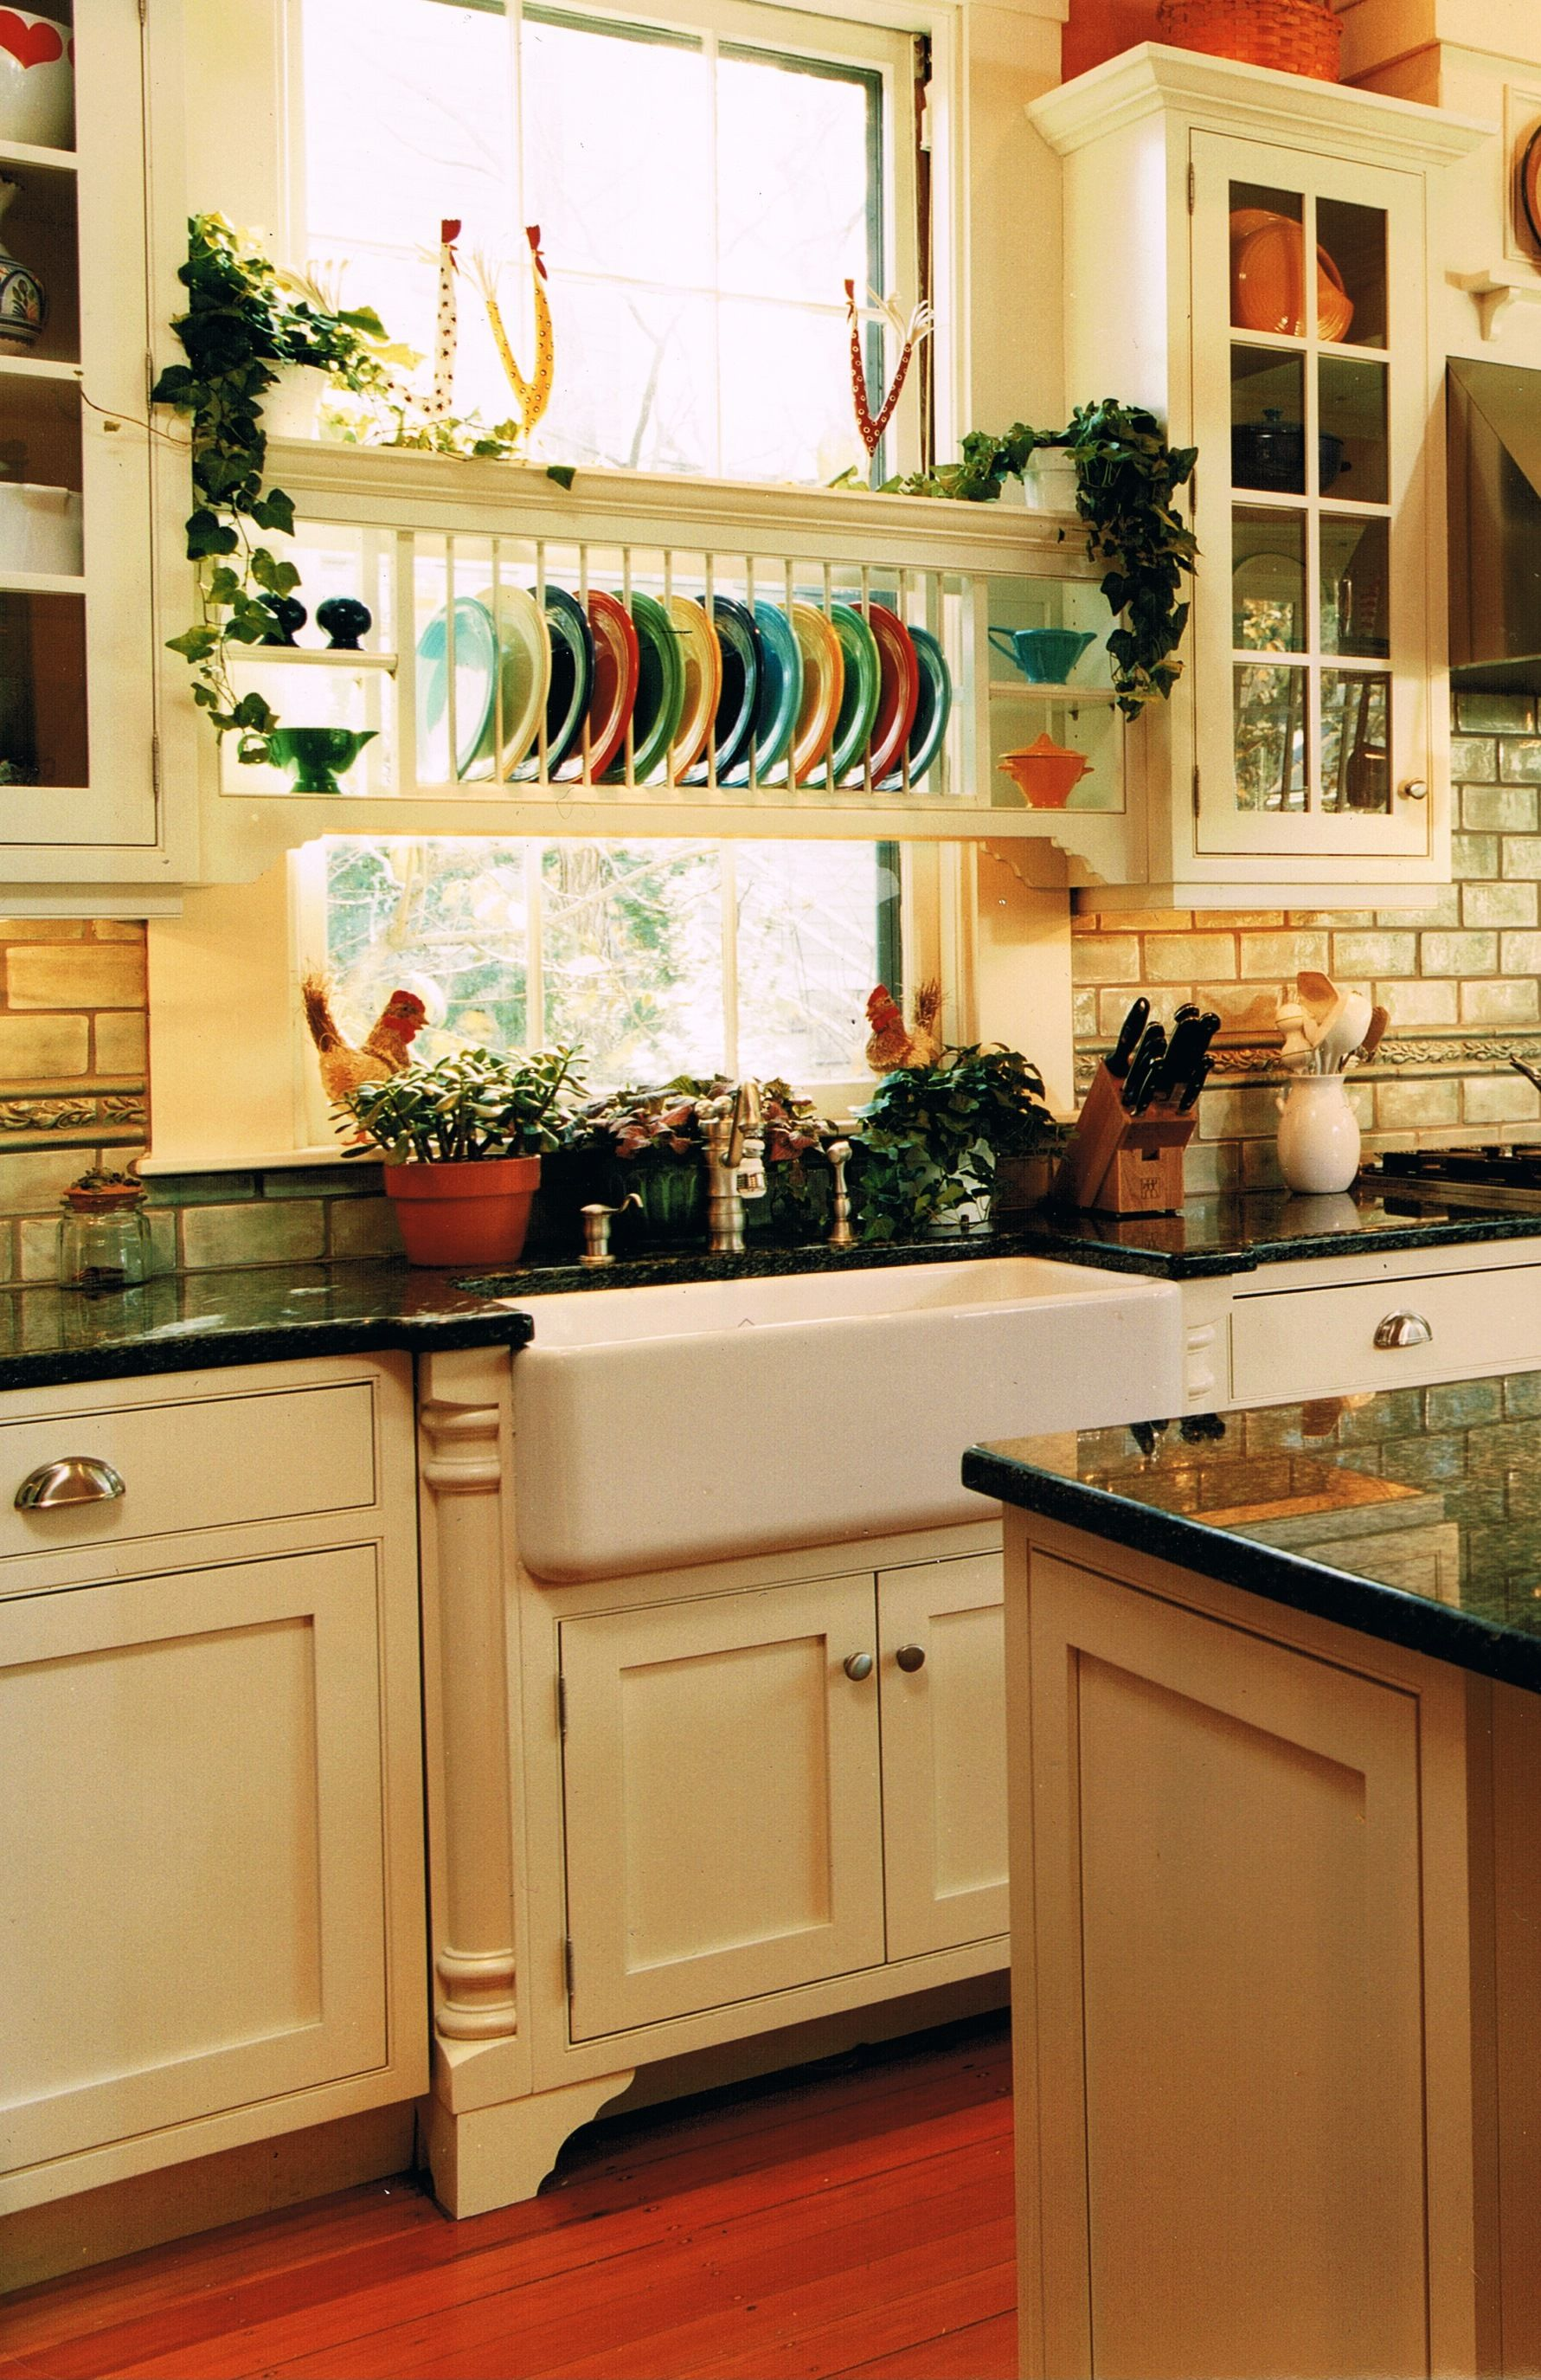 Farmhouse Sinks And Plate Holder Cool Way To Display My